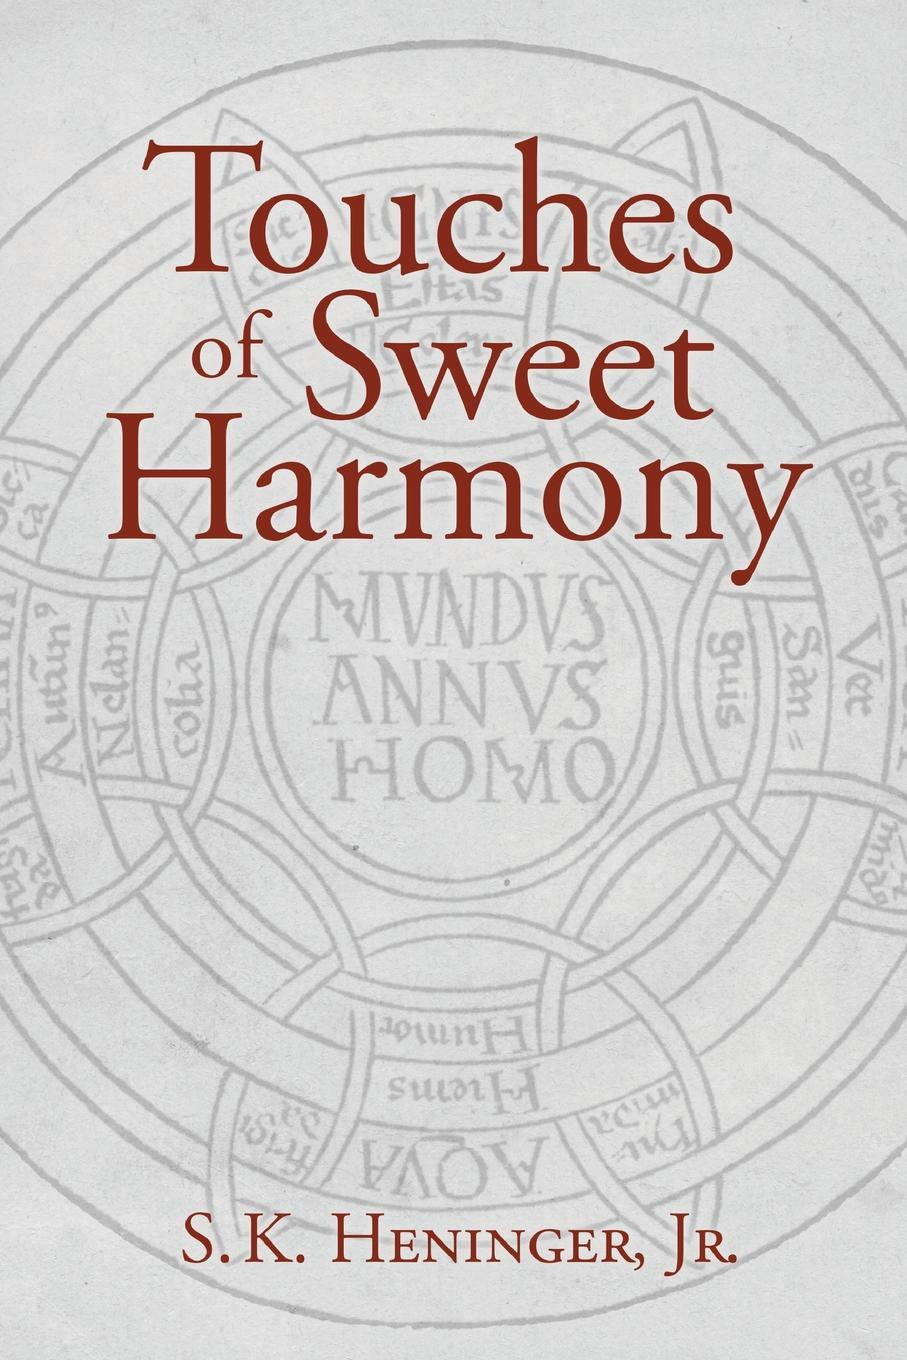 Jr. S. K. Heninger, S. K. Heninger Jr Touches of Sweet Harmony. Pythagorean Cosmology and Renaissance Poetics art and violence in early renaissance florence